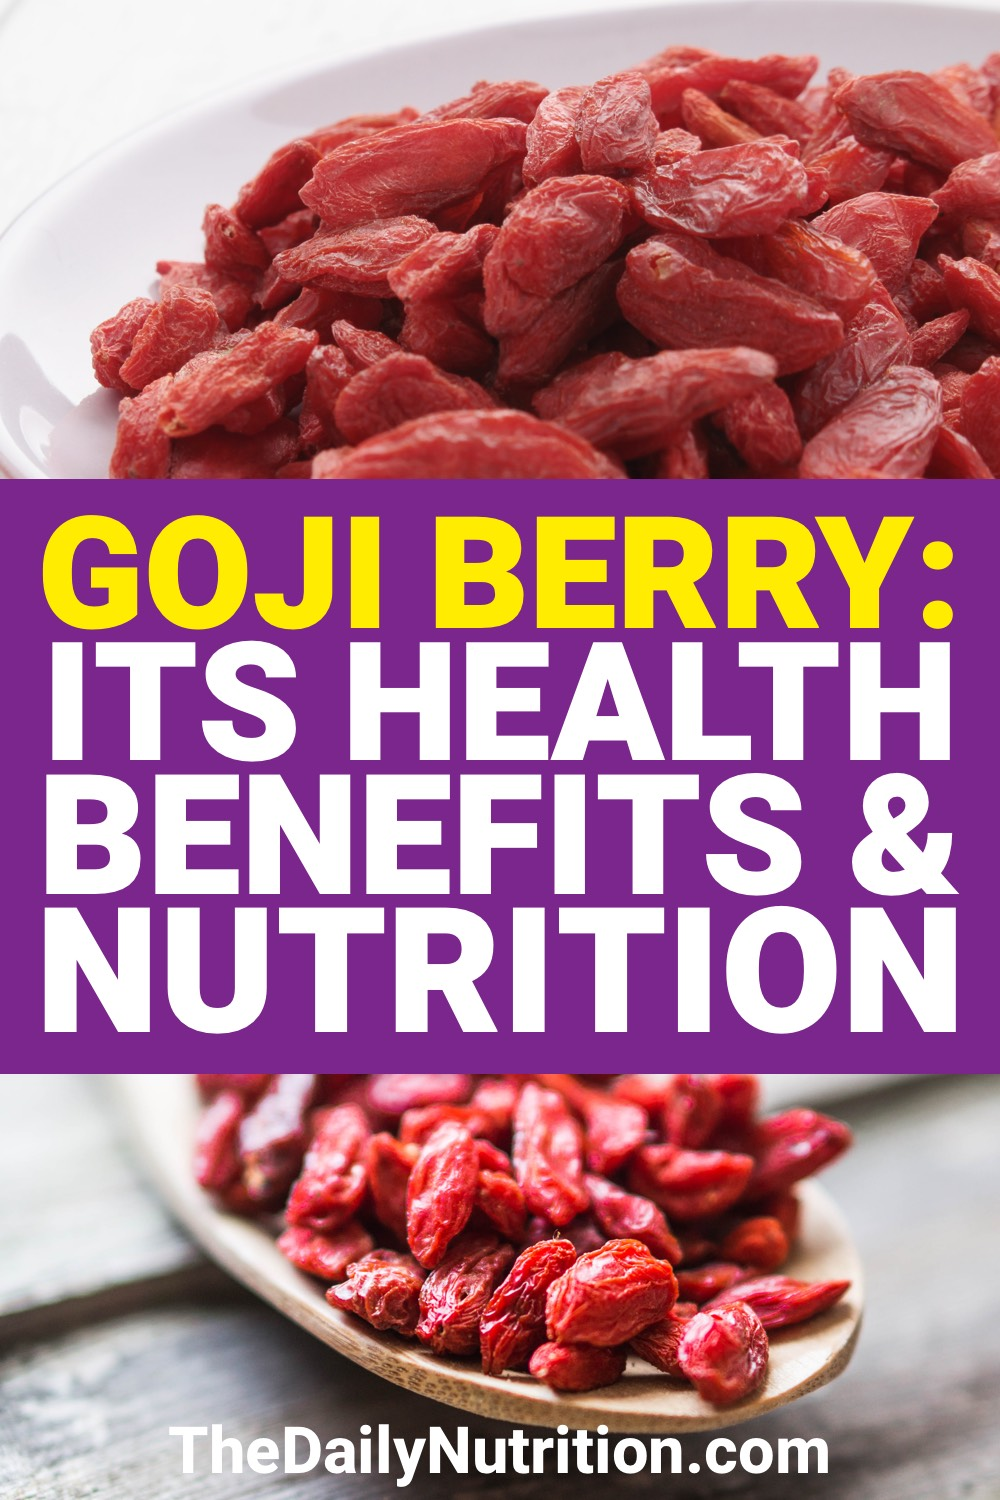 The health of goji berries may be unmatched by any other fruit. Find out goji berry benefits here.